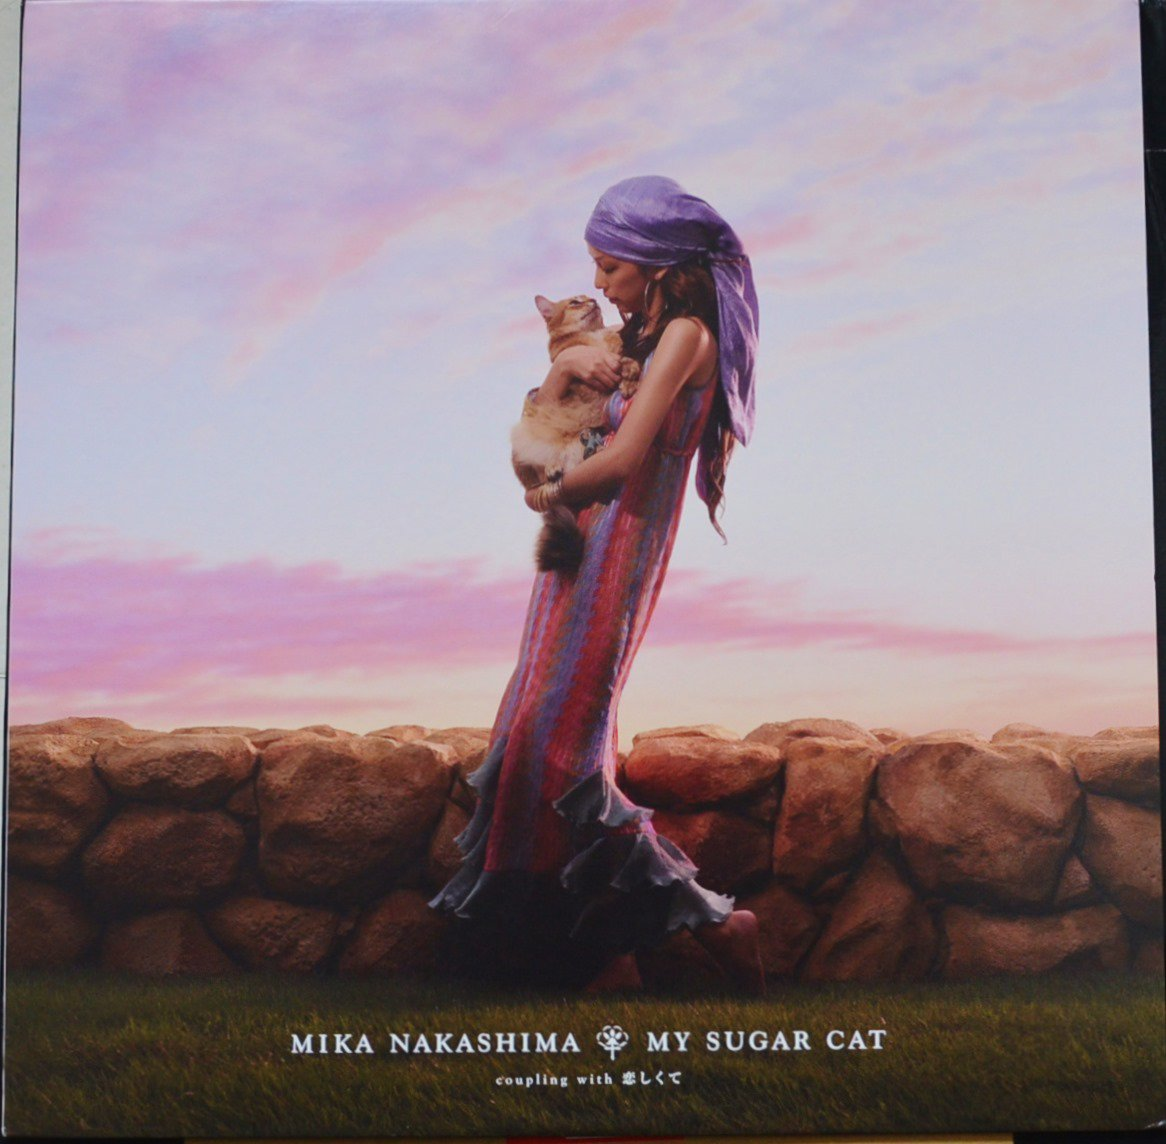 中島美嘉 MIKA NAKASHIMA ‎/ MY SUGAR CAT / 恋しくて (BEGINカバー) (12